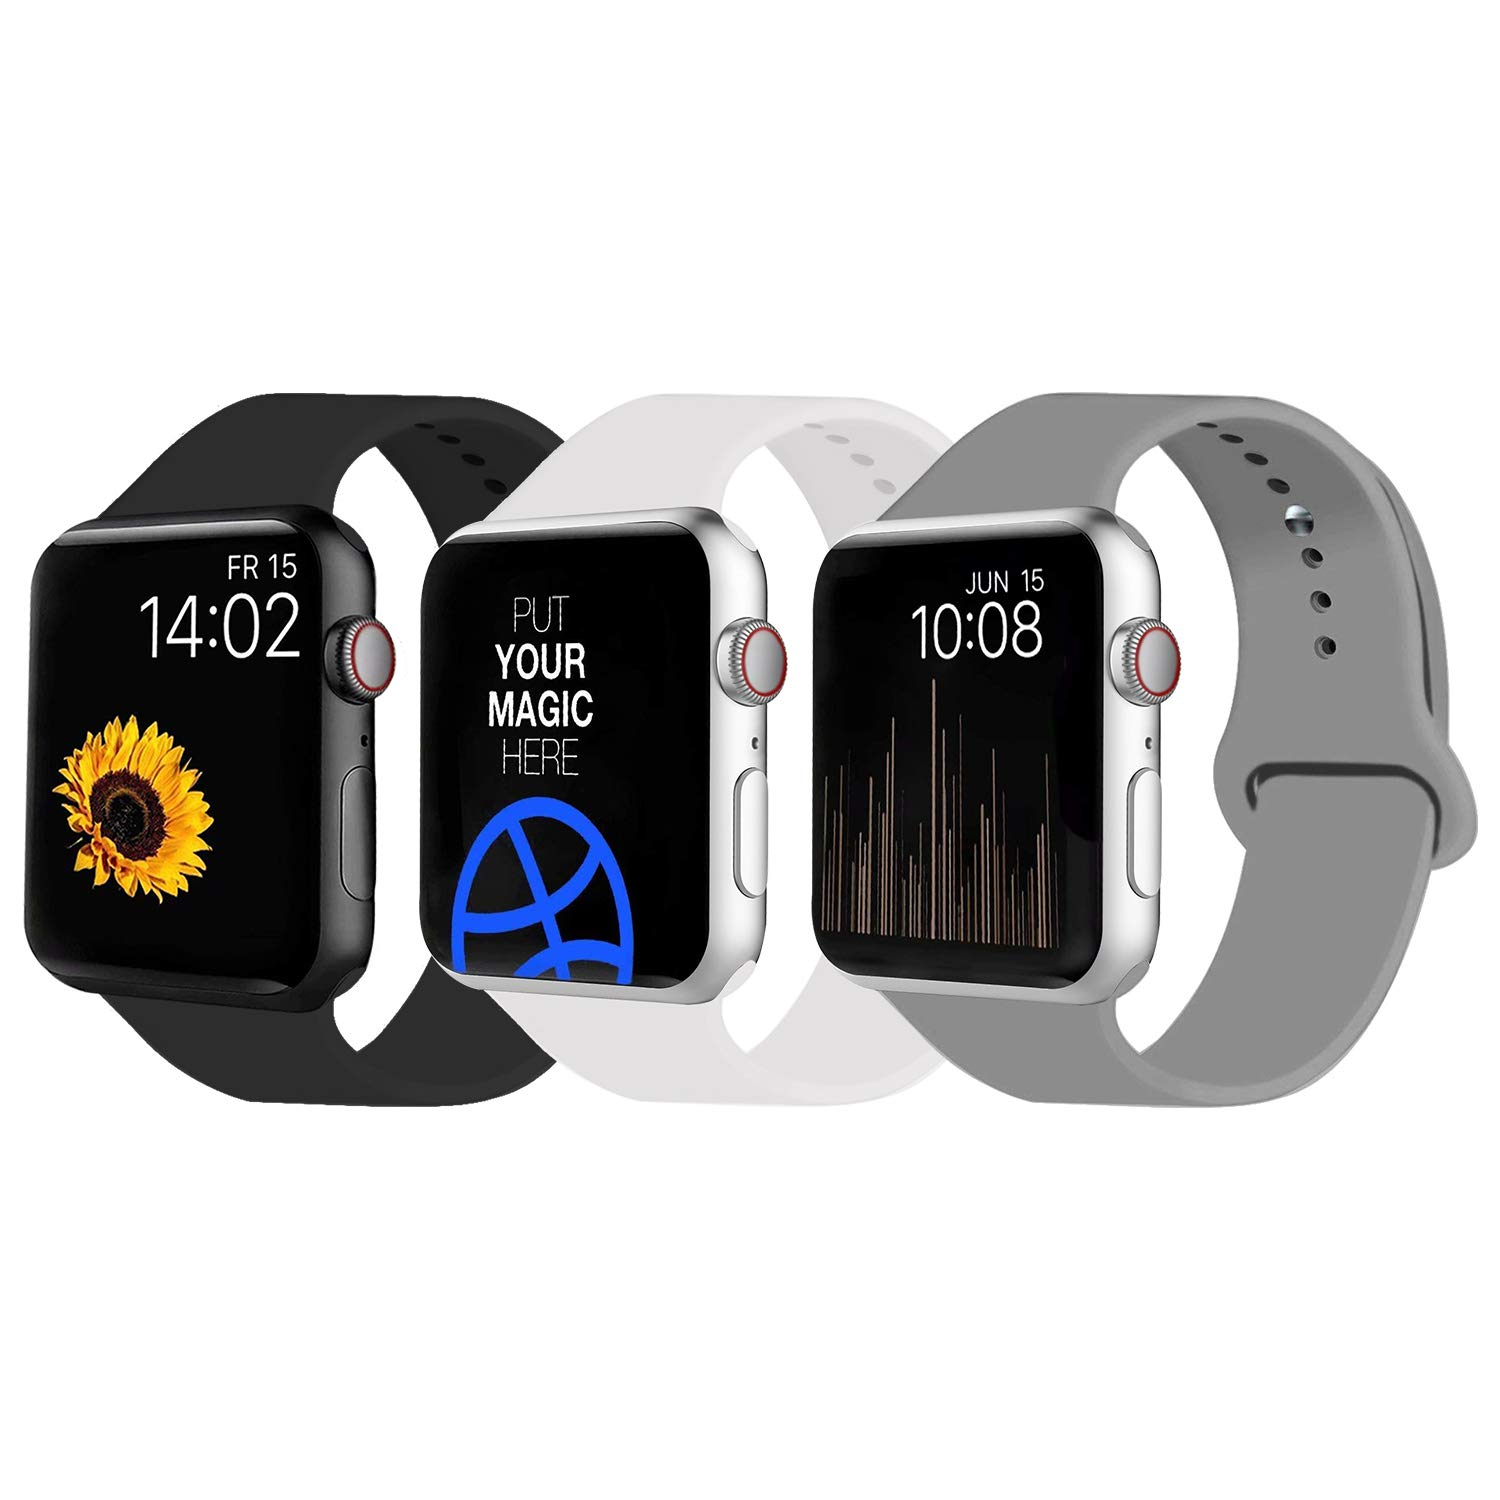 VATI Sport Band Compatible for Apple Watch Band 38mm 40mm, 3-Pack Soft Silicone Sport Strap Replacement Bands Compatible with 2018 iWatch Apple Watch Series 4/3/2/1, 38MM 40MM S/M by VATI